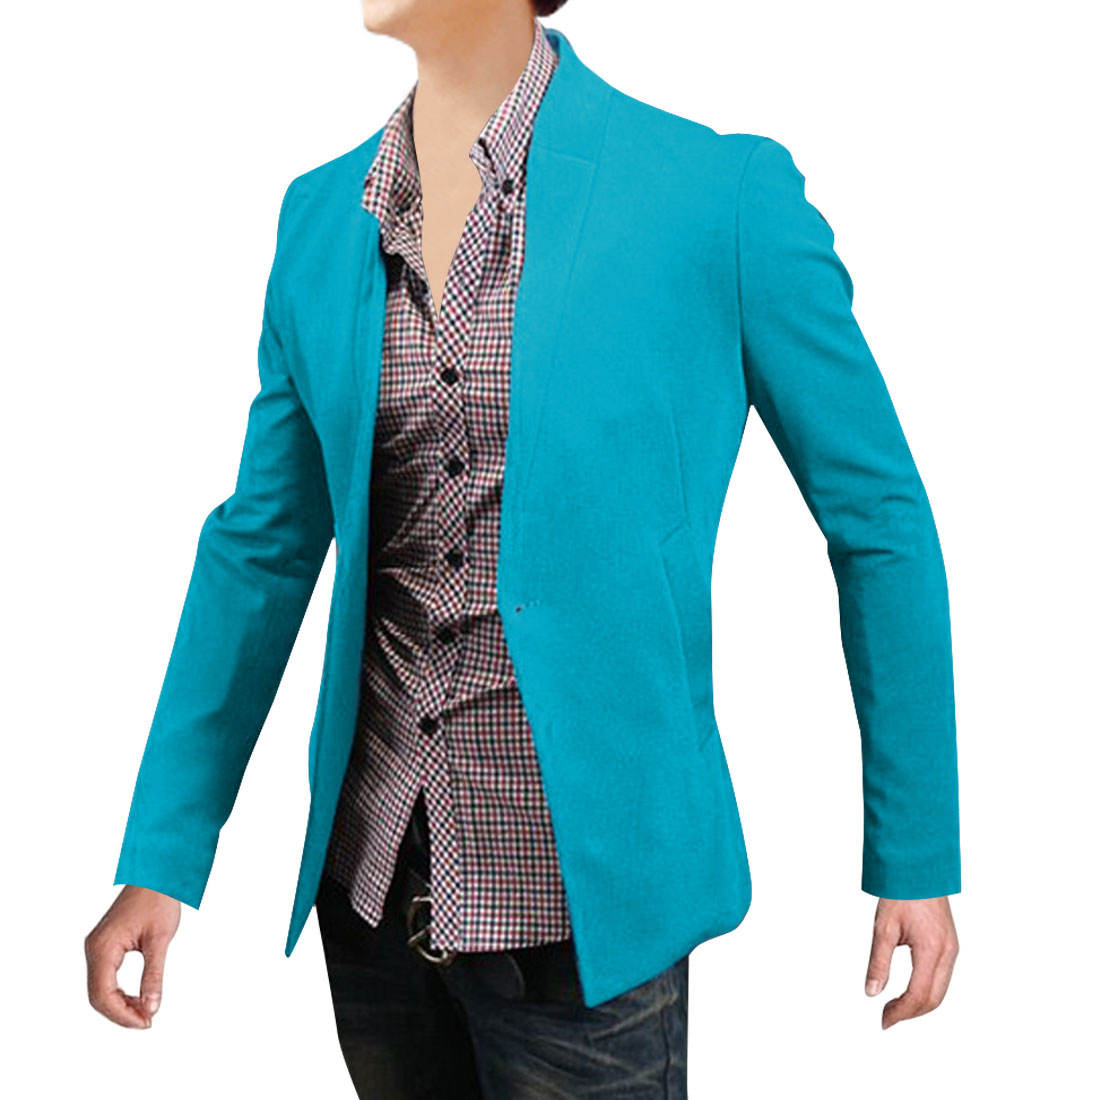 Men Stand Collar One Button Closure Blazer Turauoise M